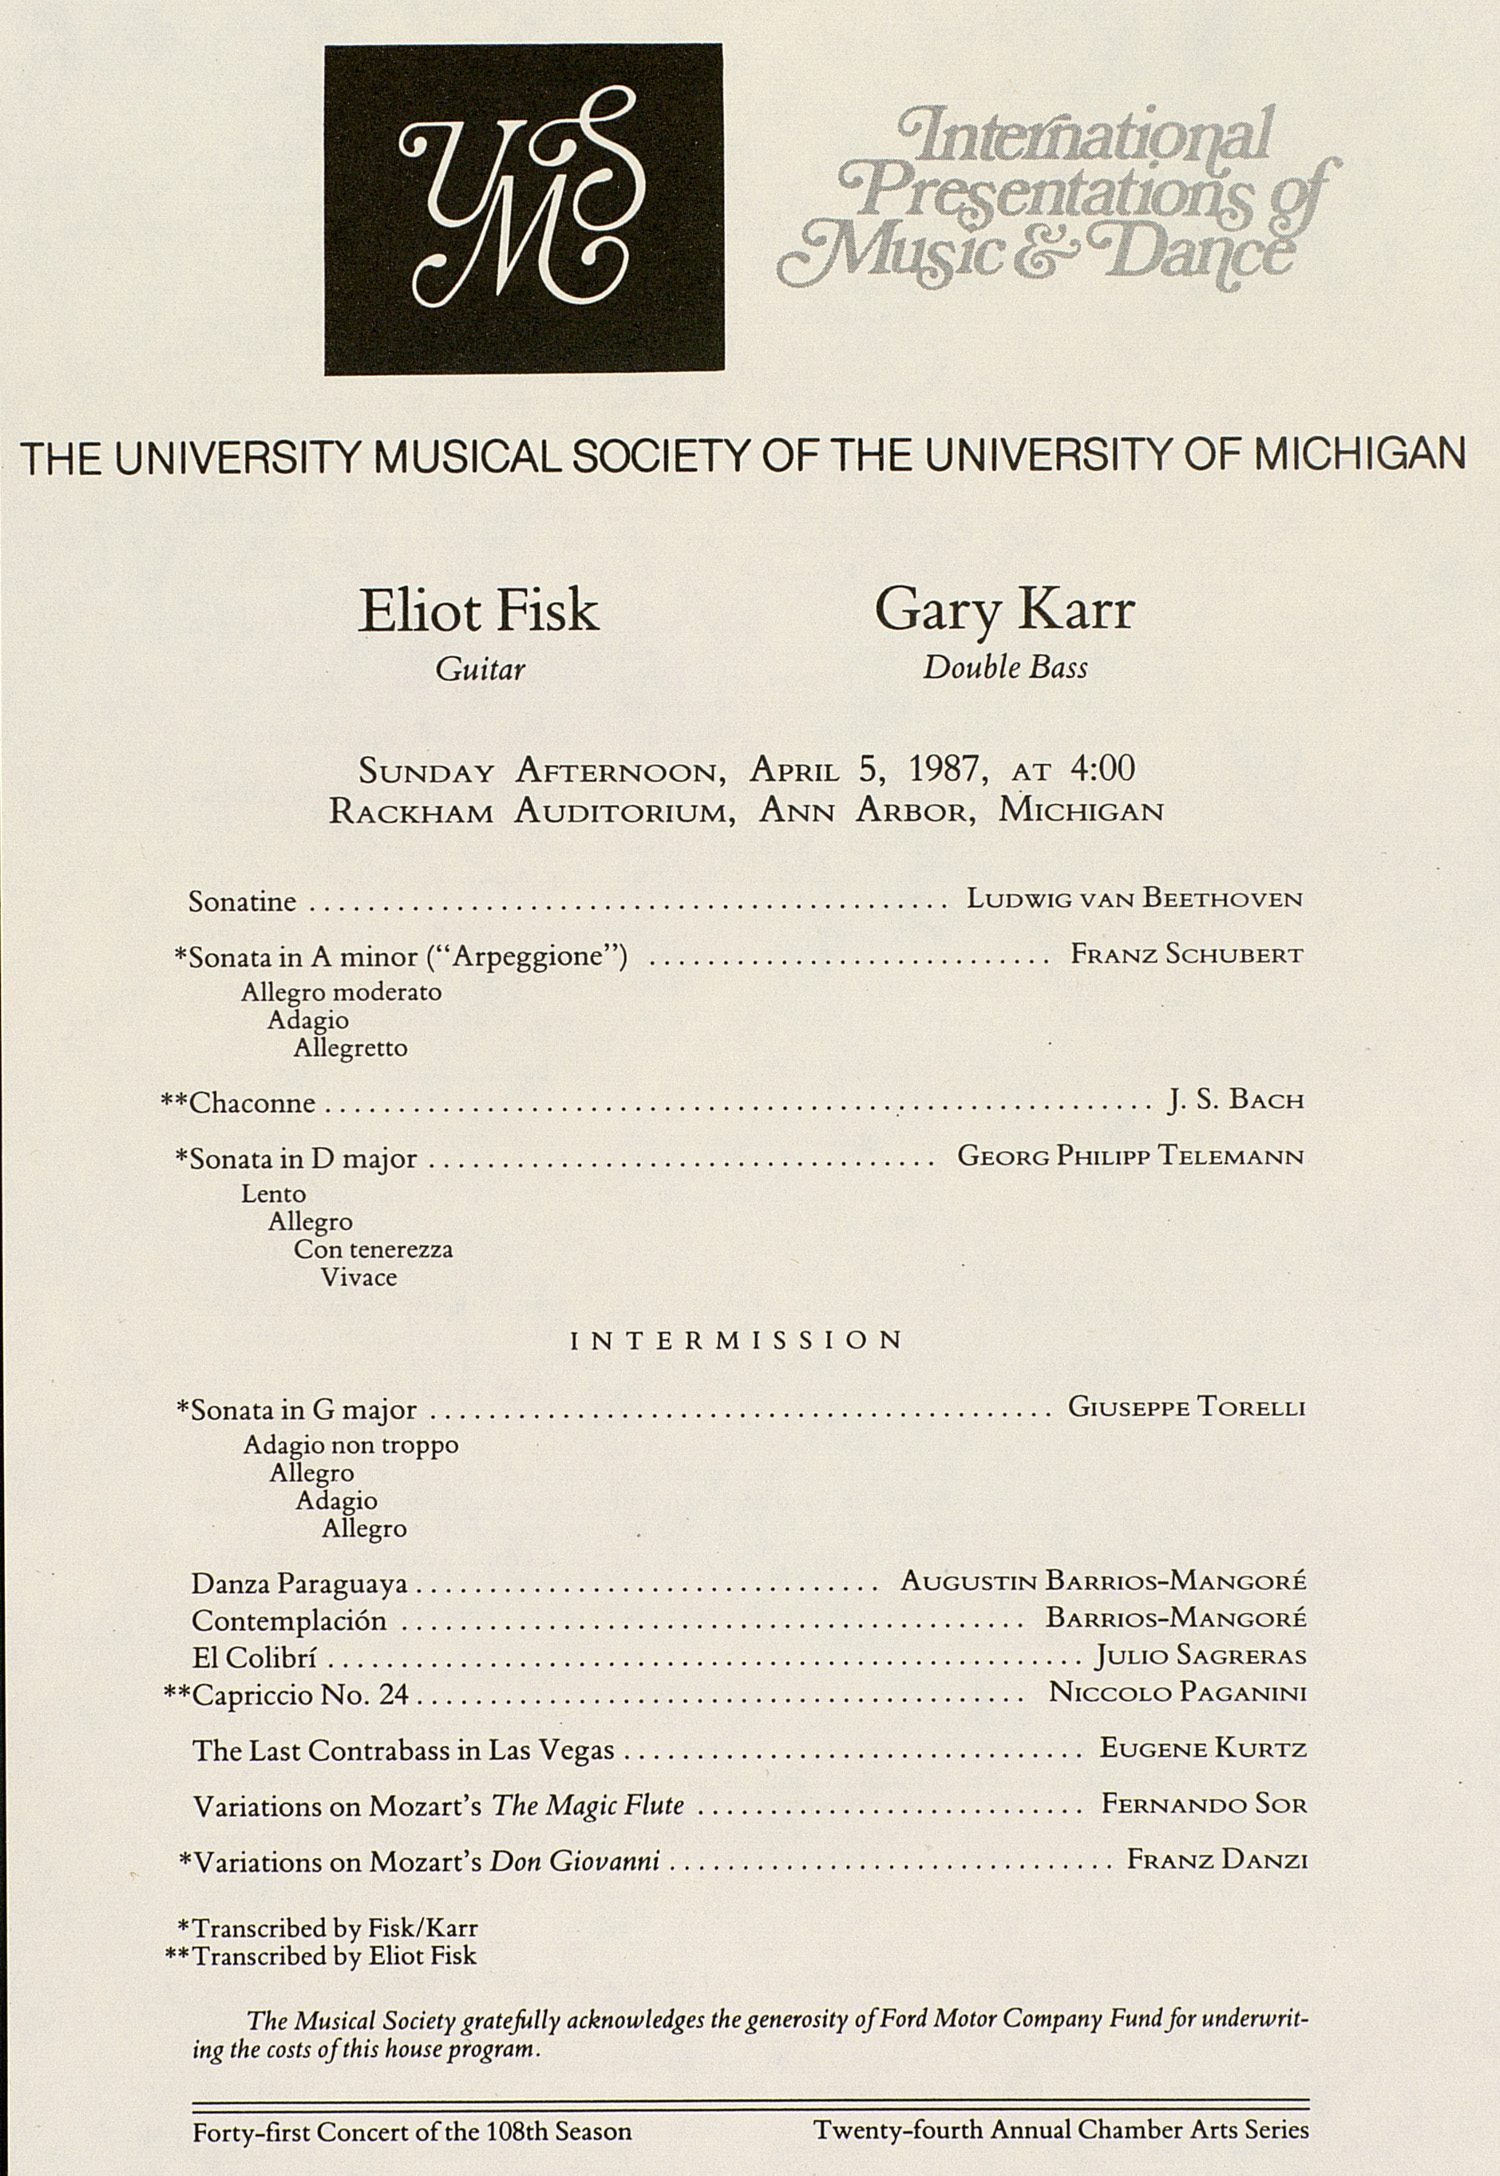 UMS Concert Program, April 5, 1987: International Presentations Of Music & Dance --  image